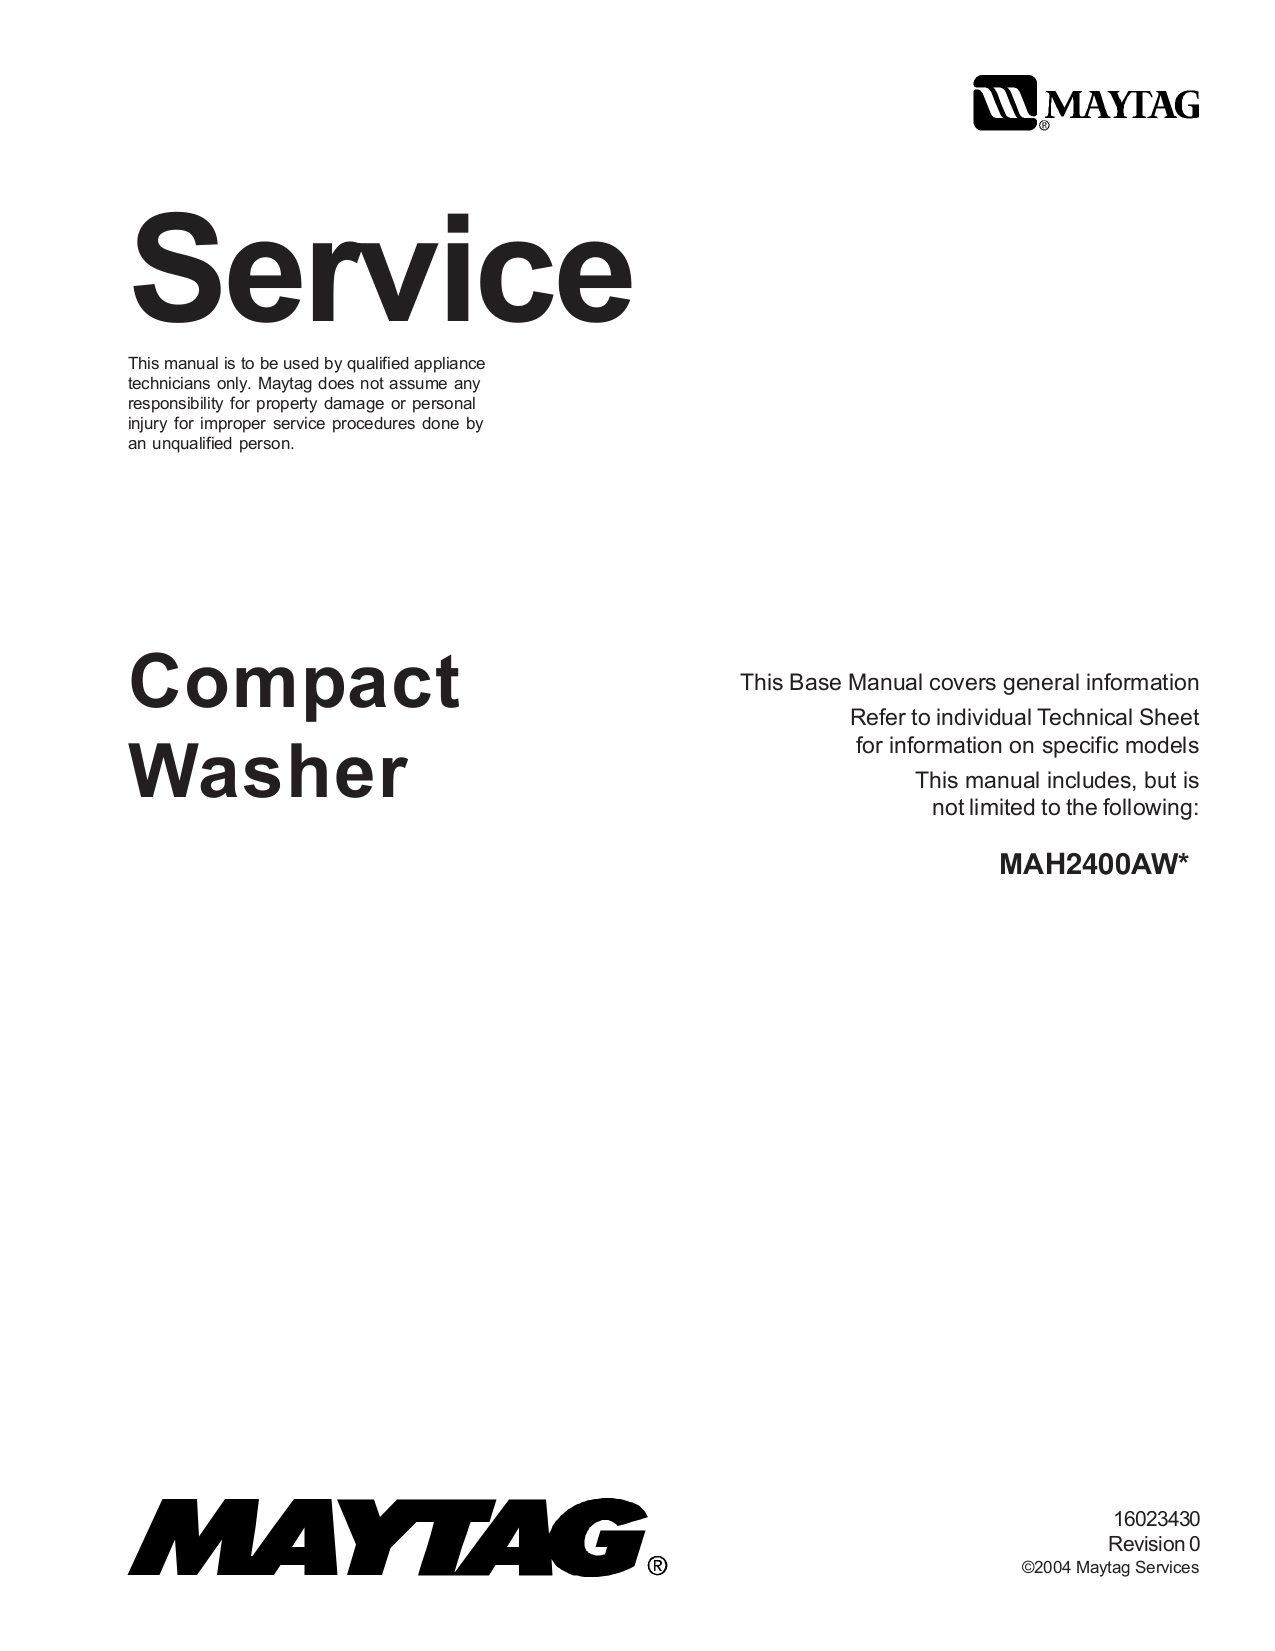 Download free pdf for Maytag MAH2400A Washer manual